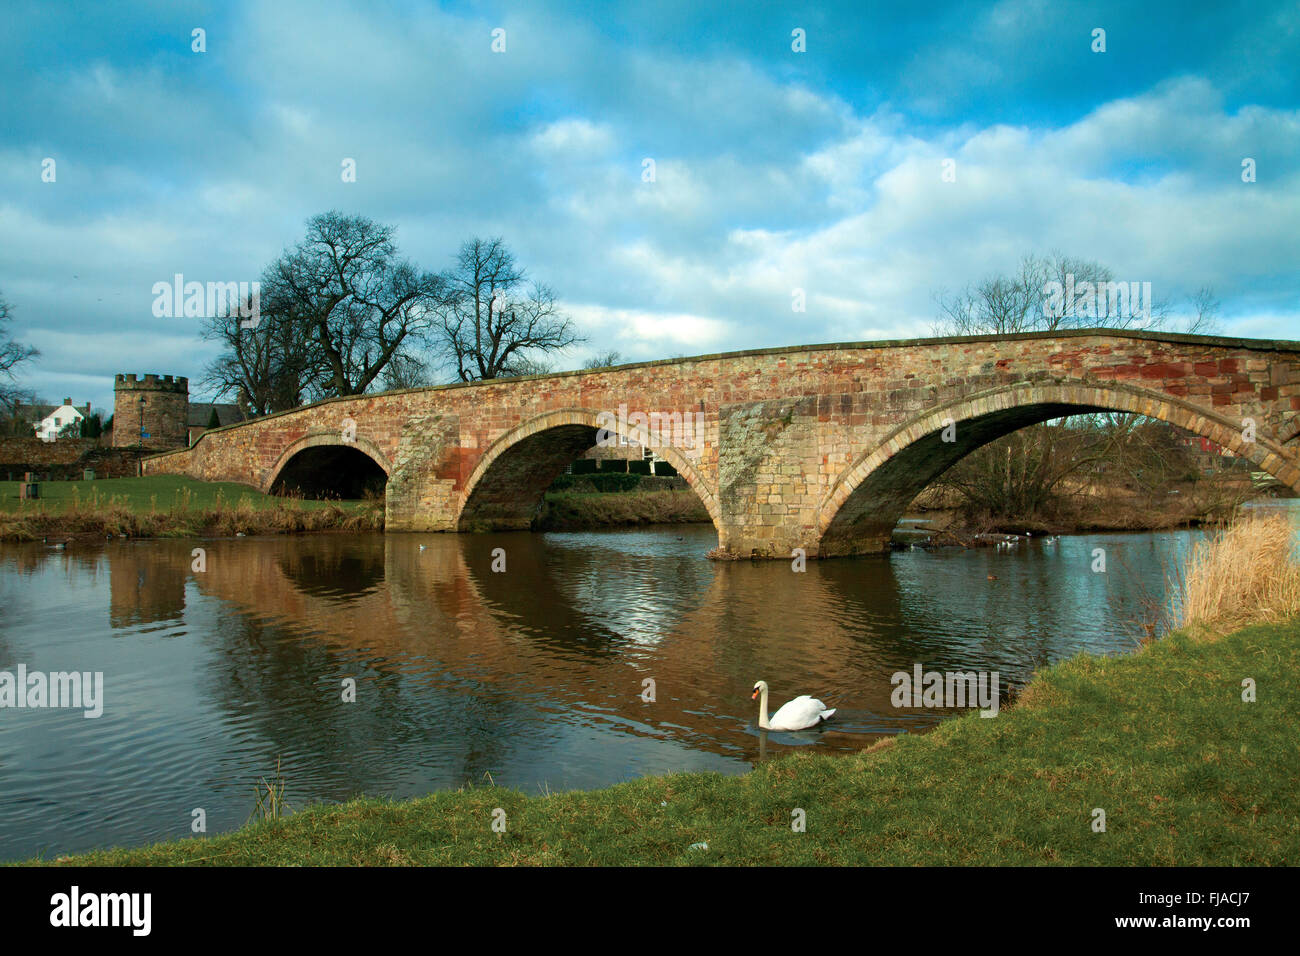 The Nungate Bridge and the River Tyne, Haddington, East Lothian - Stock Image